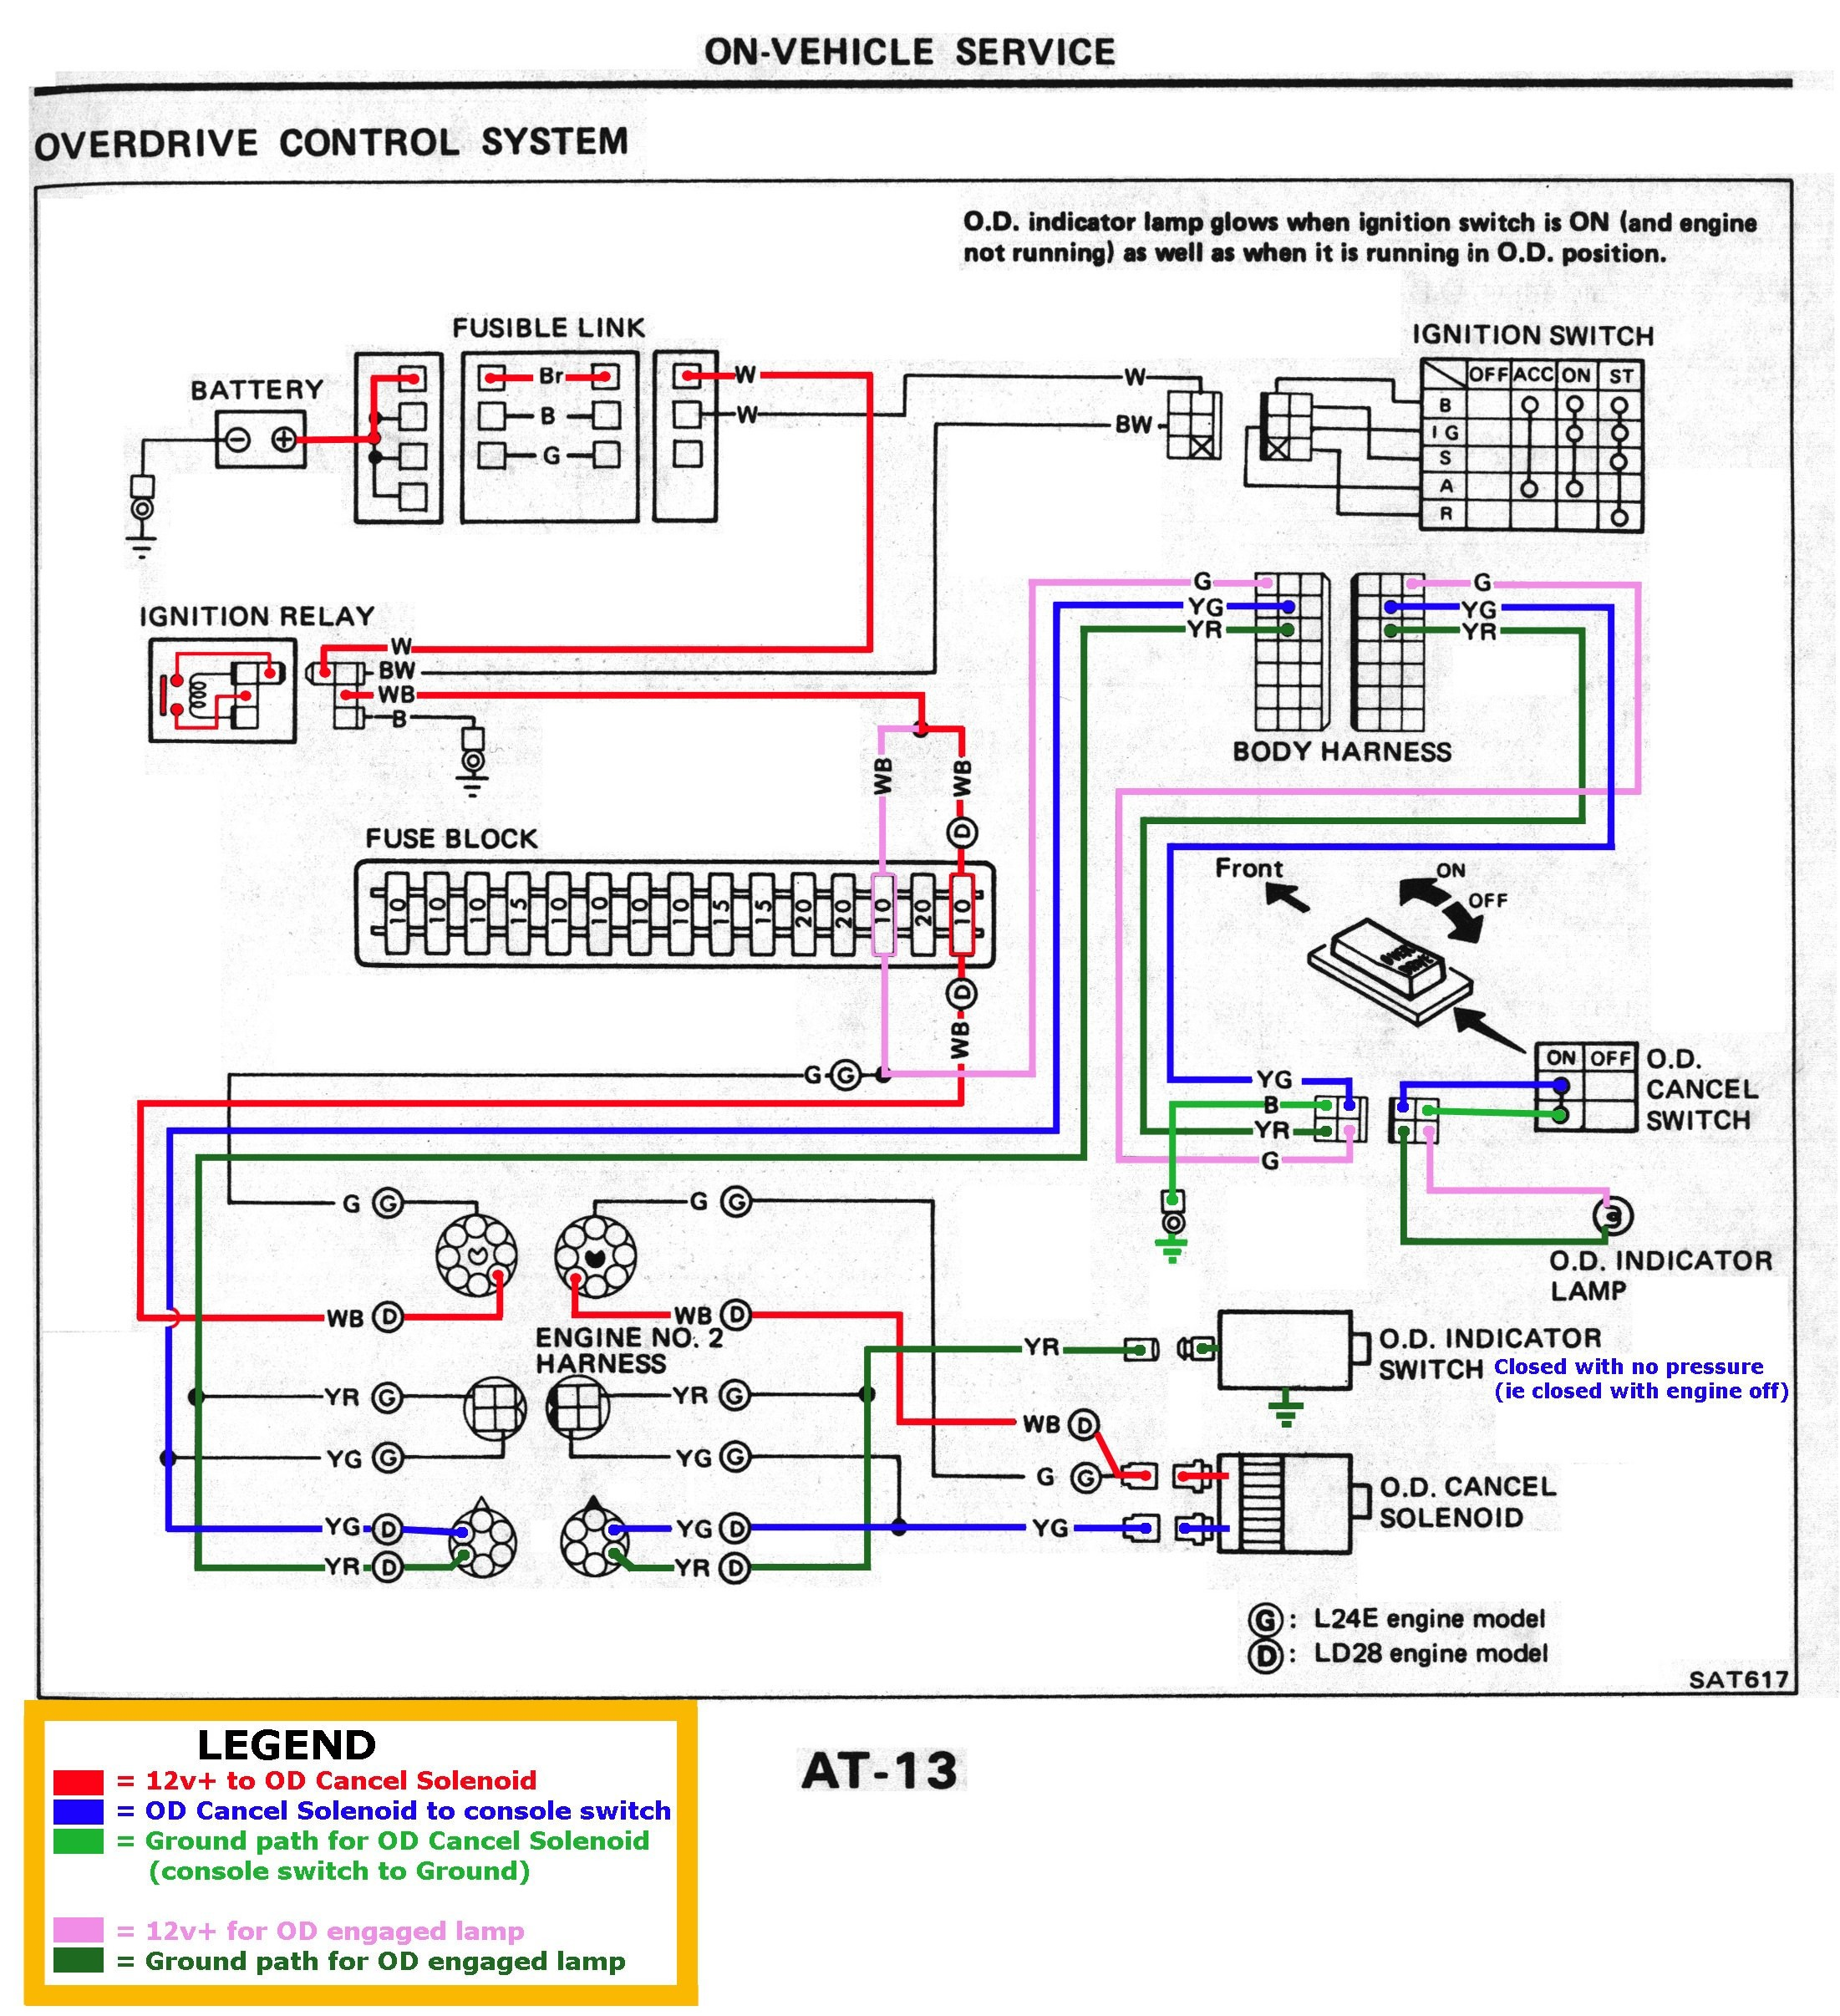 1998 Nissan Altima Engine Diagram 1997 Nissan Pick Up Engine Diagram Worksheet and Wiring Diagram • Of 1998 Nissan Altima Engine Diagram